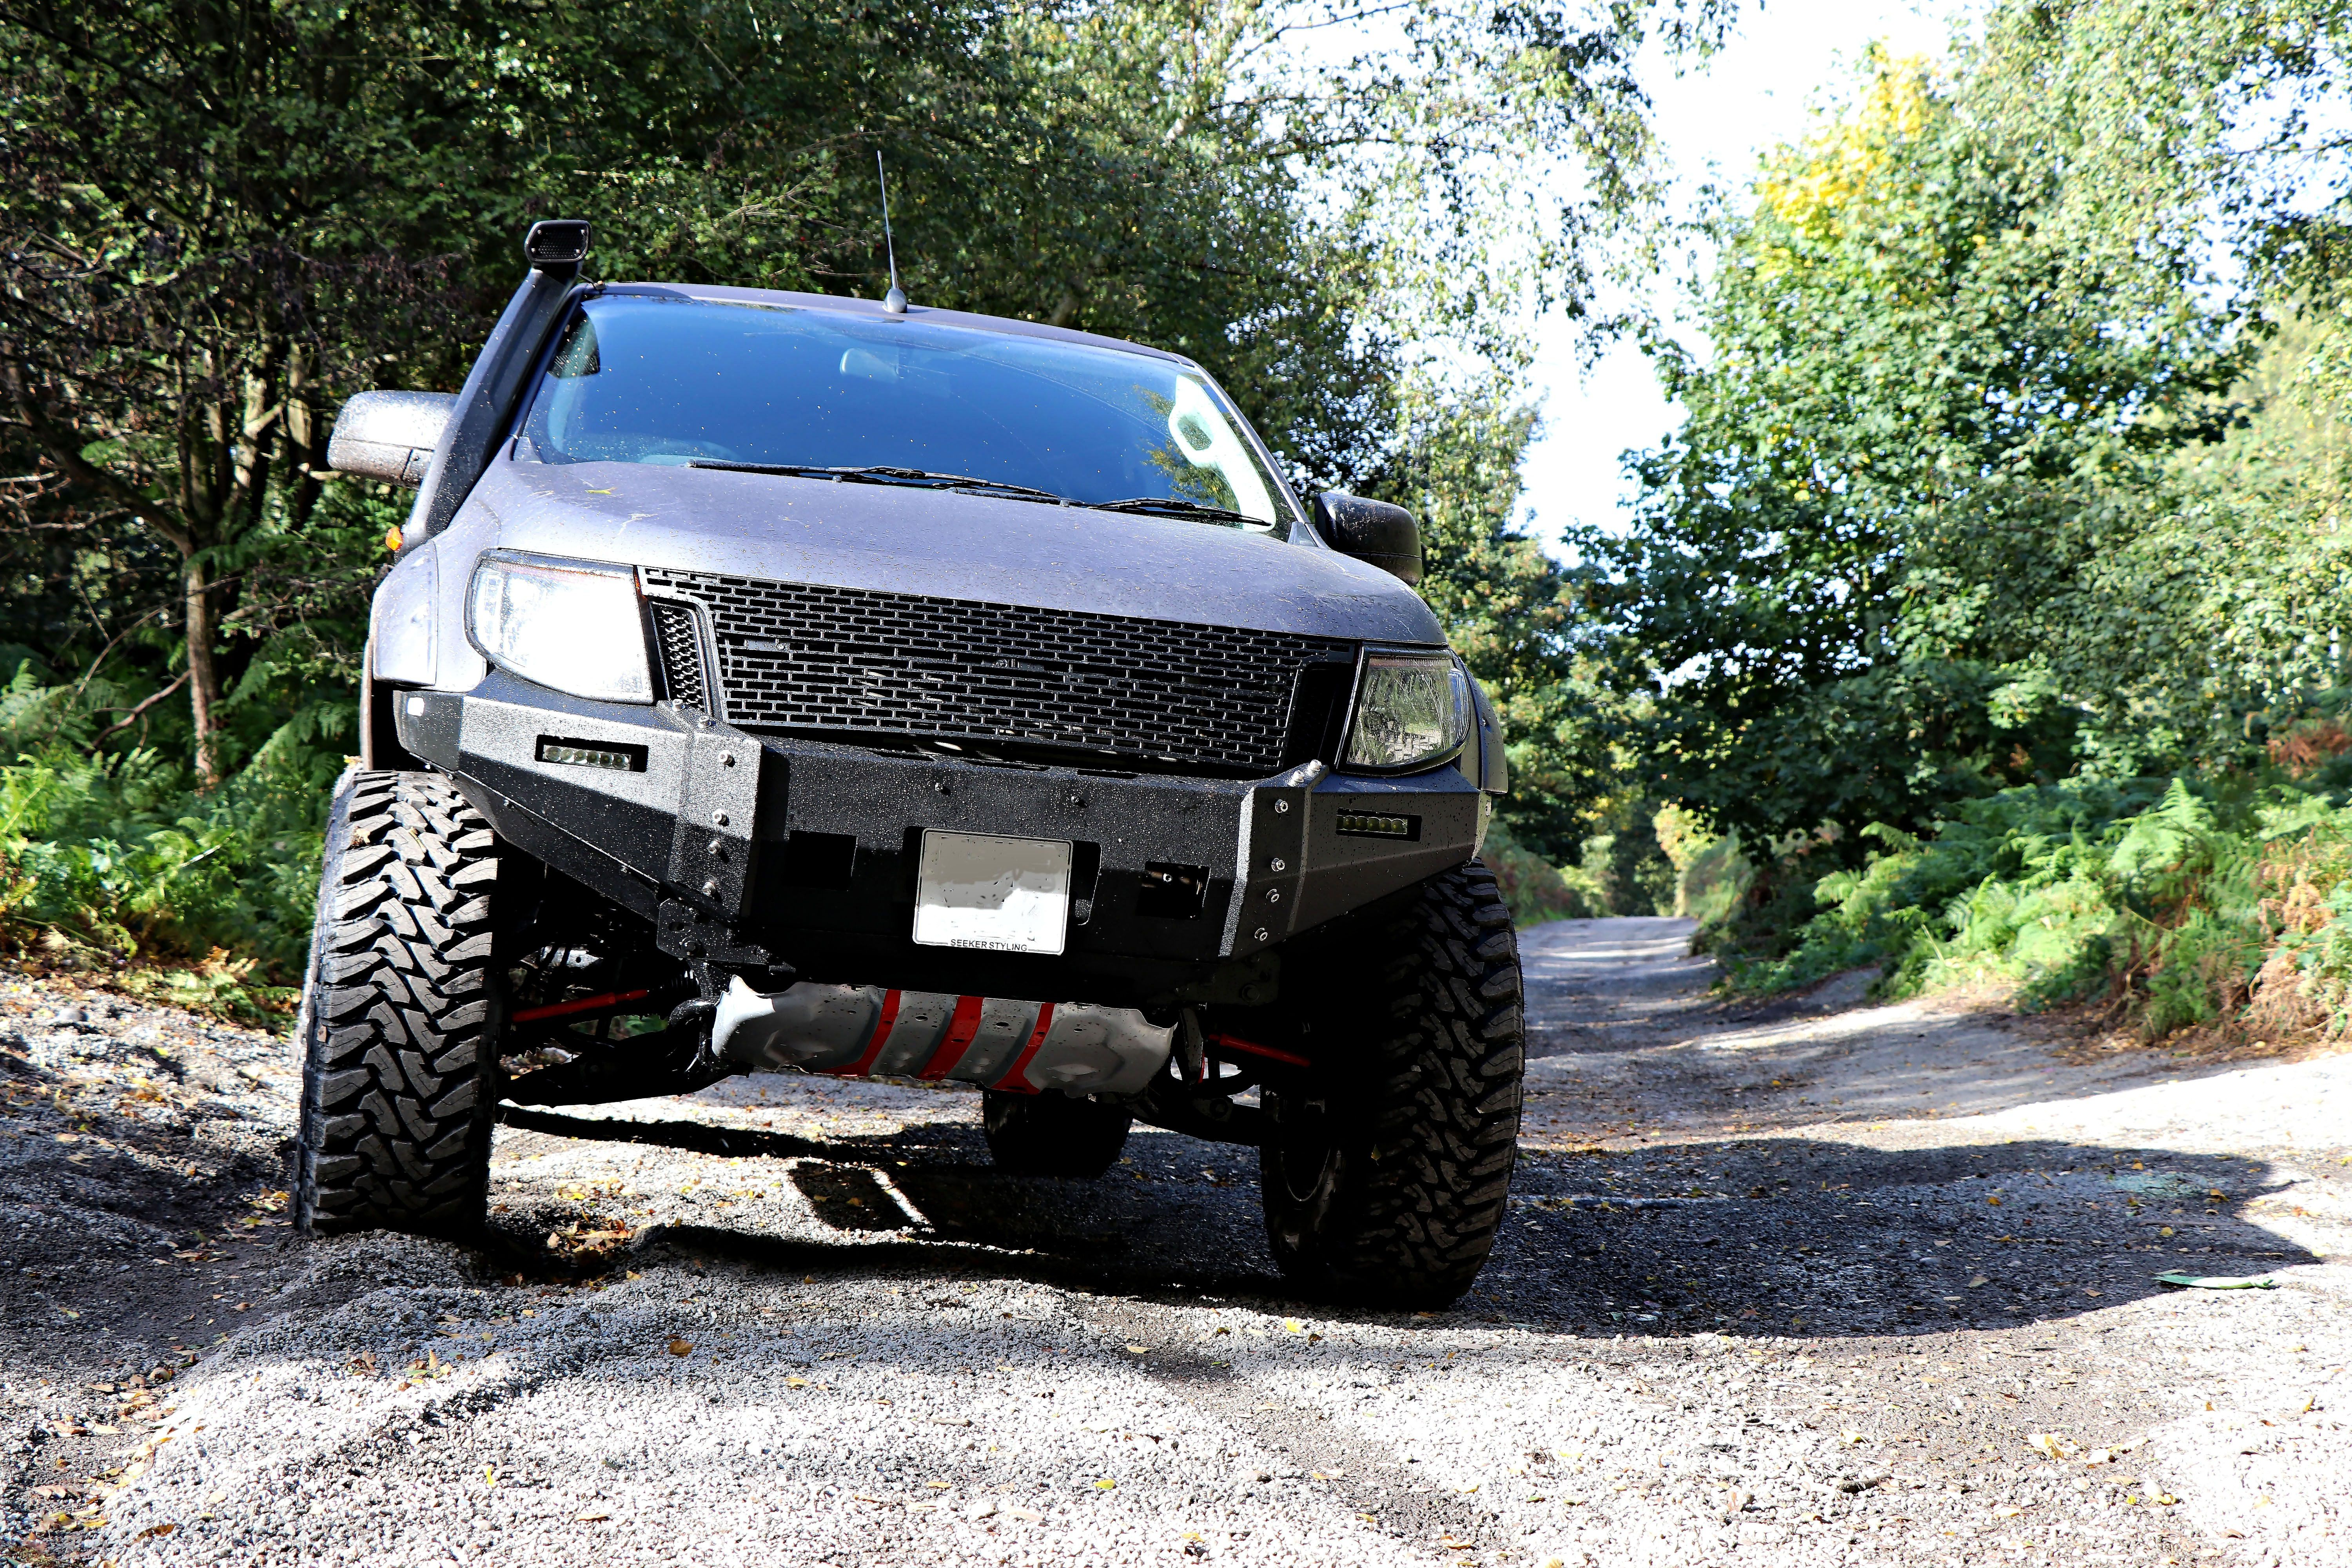 Newly launched, our Camo 'Off-road' Special Edition ...